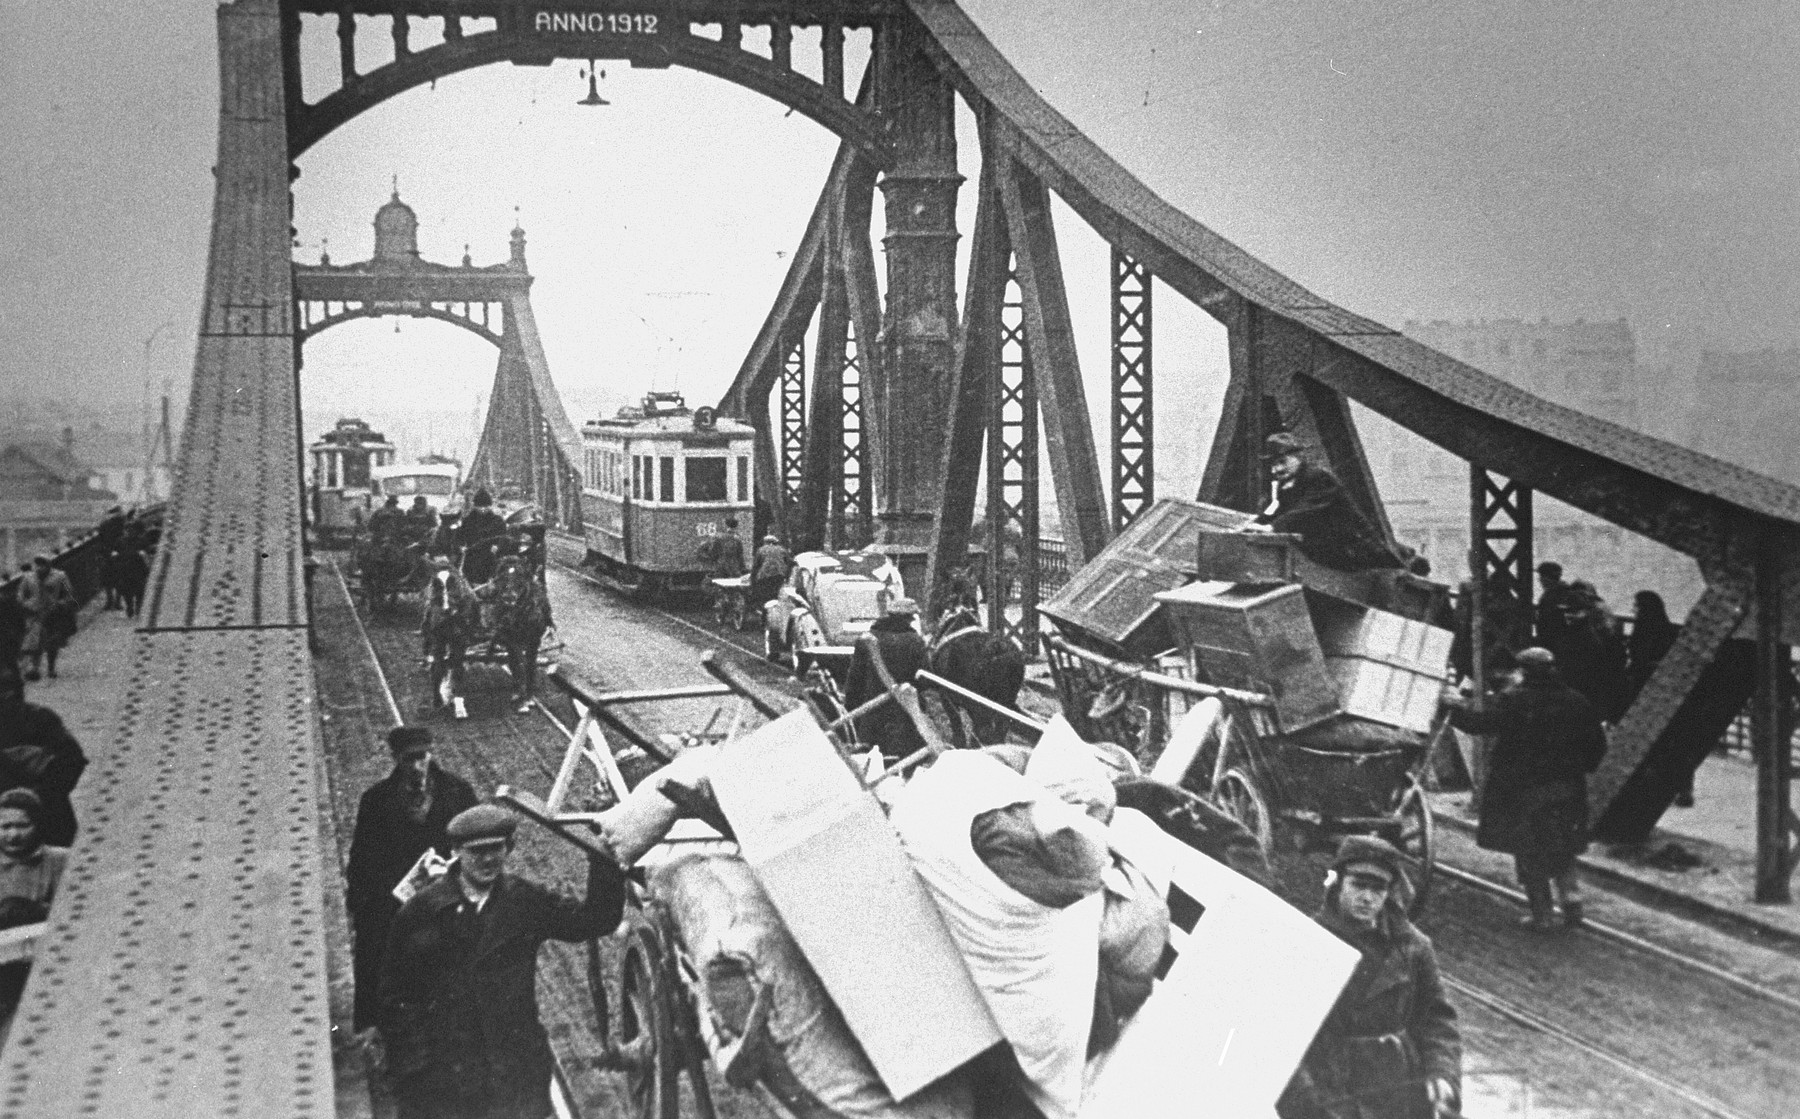 Jews who are being forced to relocate to the Krakow ghetto move their belongings in carts and horse-drawn wagons across the bridge over the Vistula River.